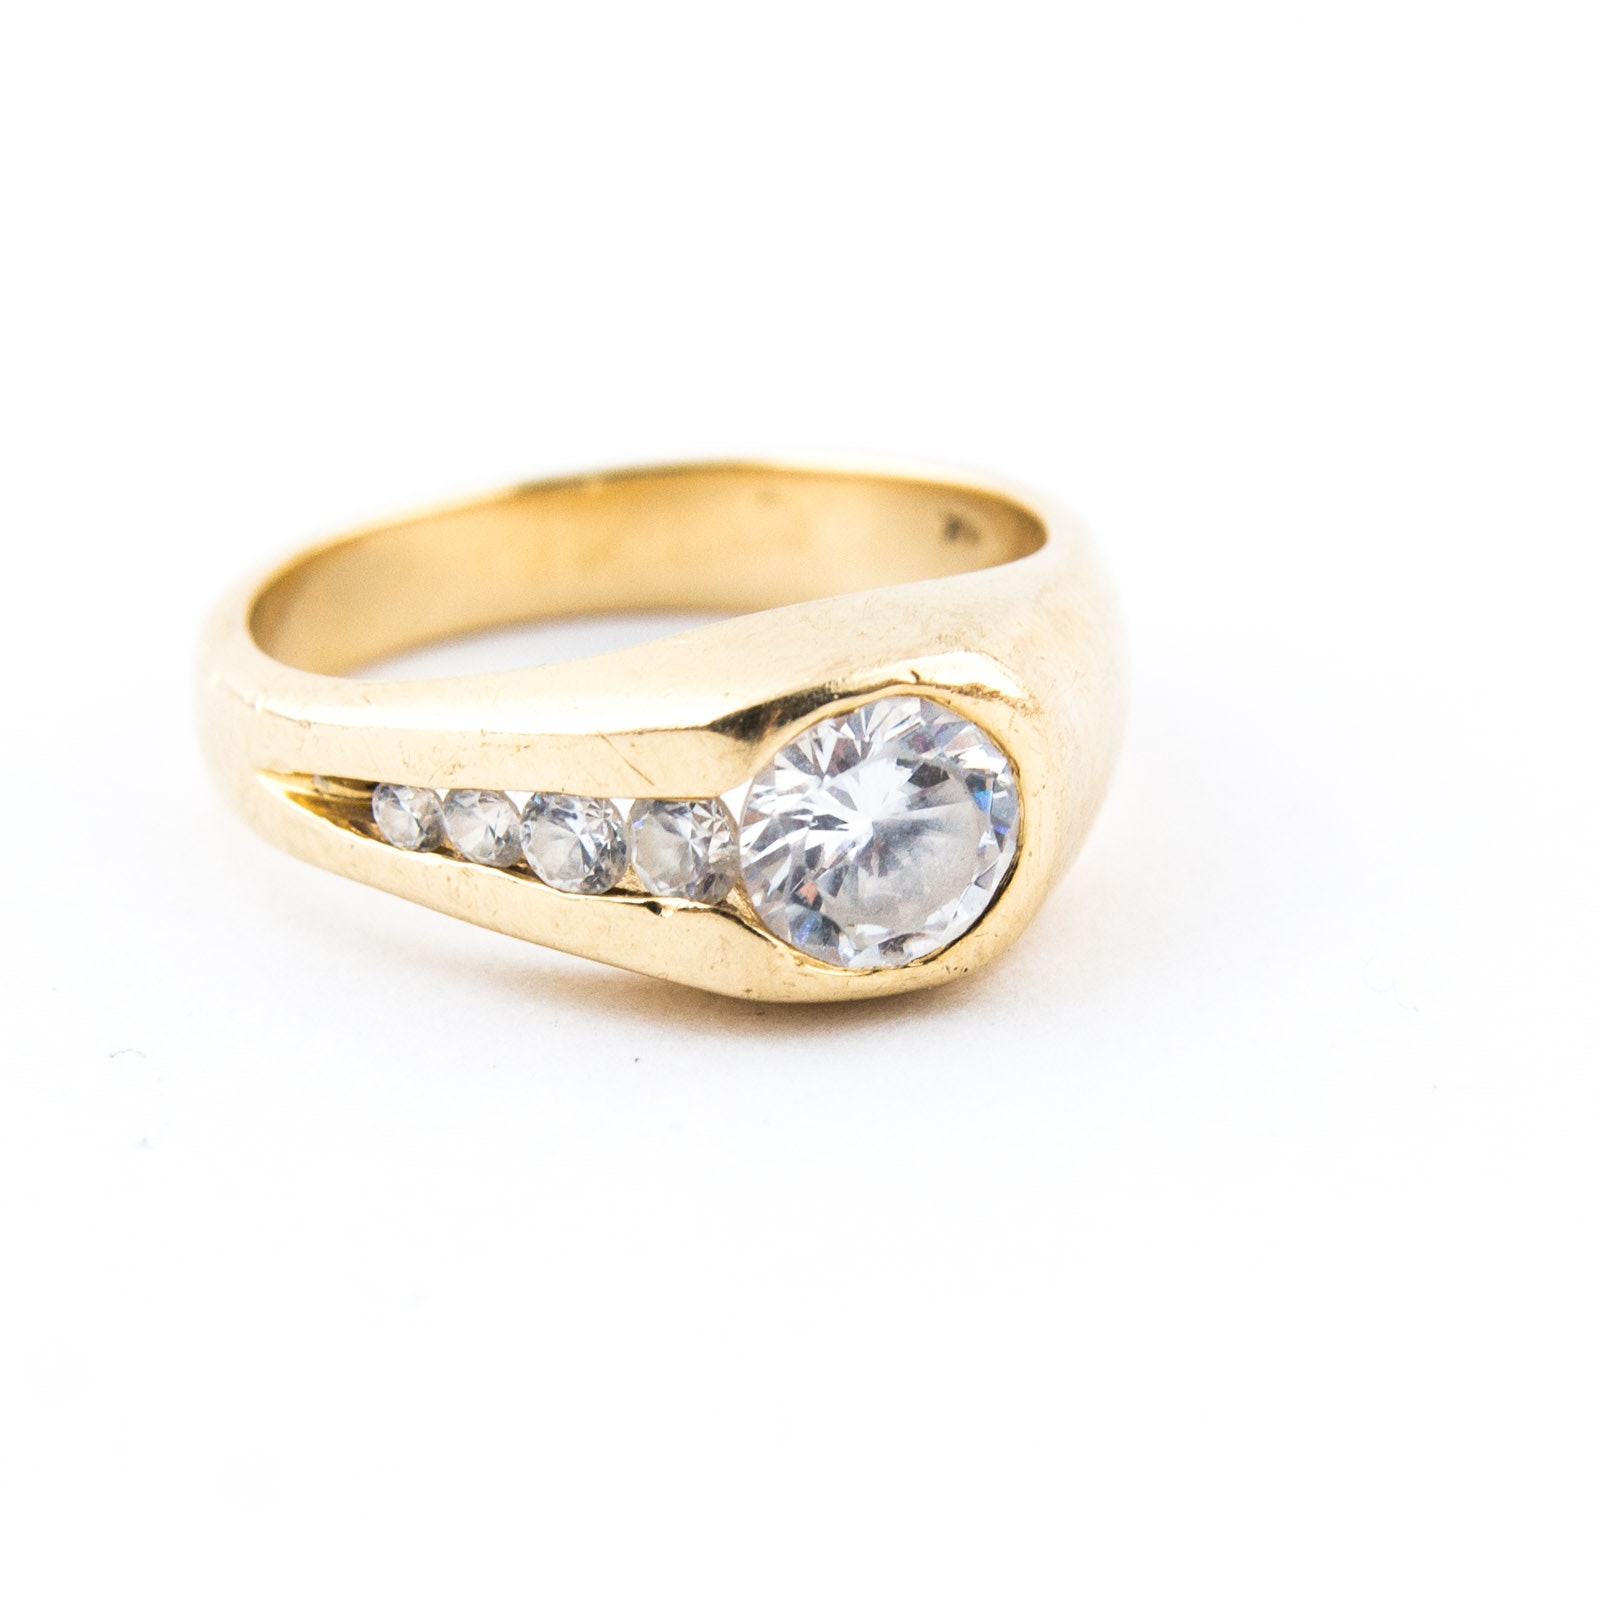 14K Yellow Gold and Cubic Zirconia Ring